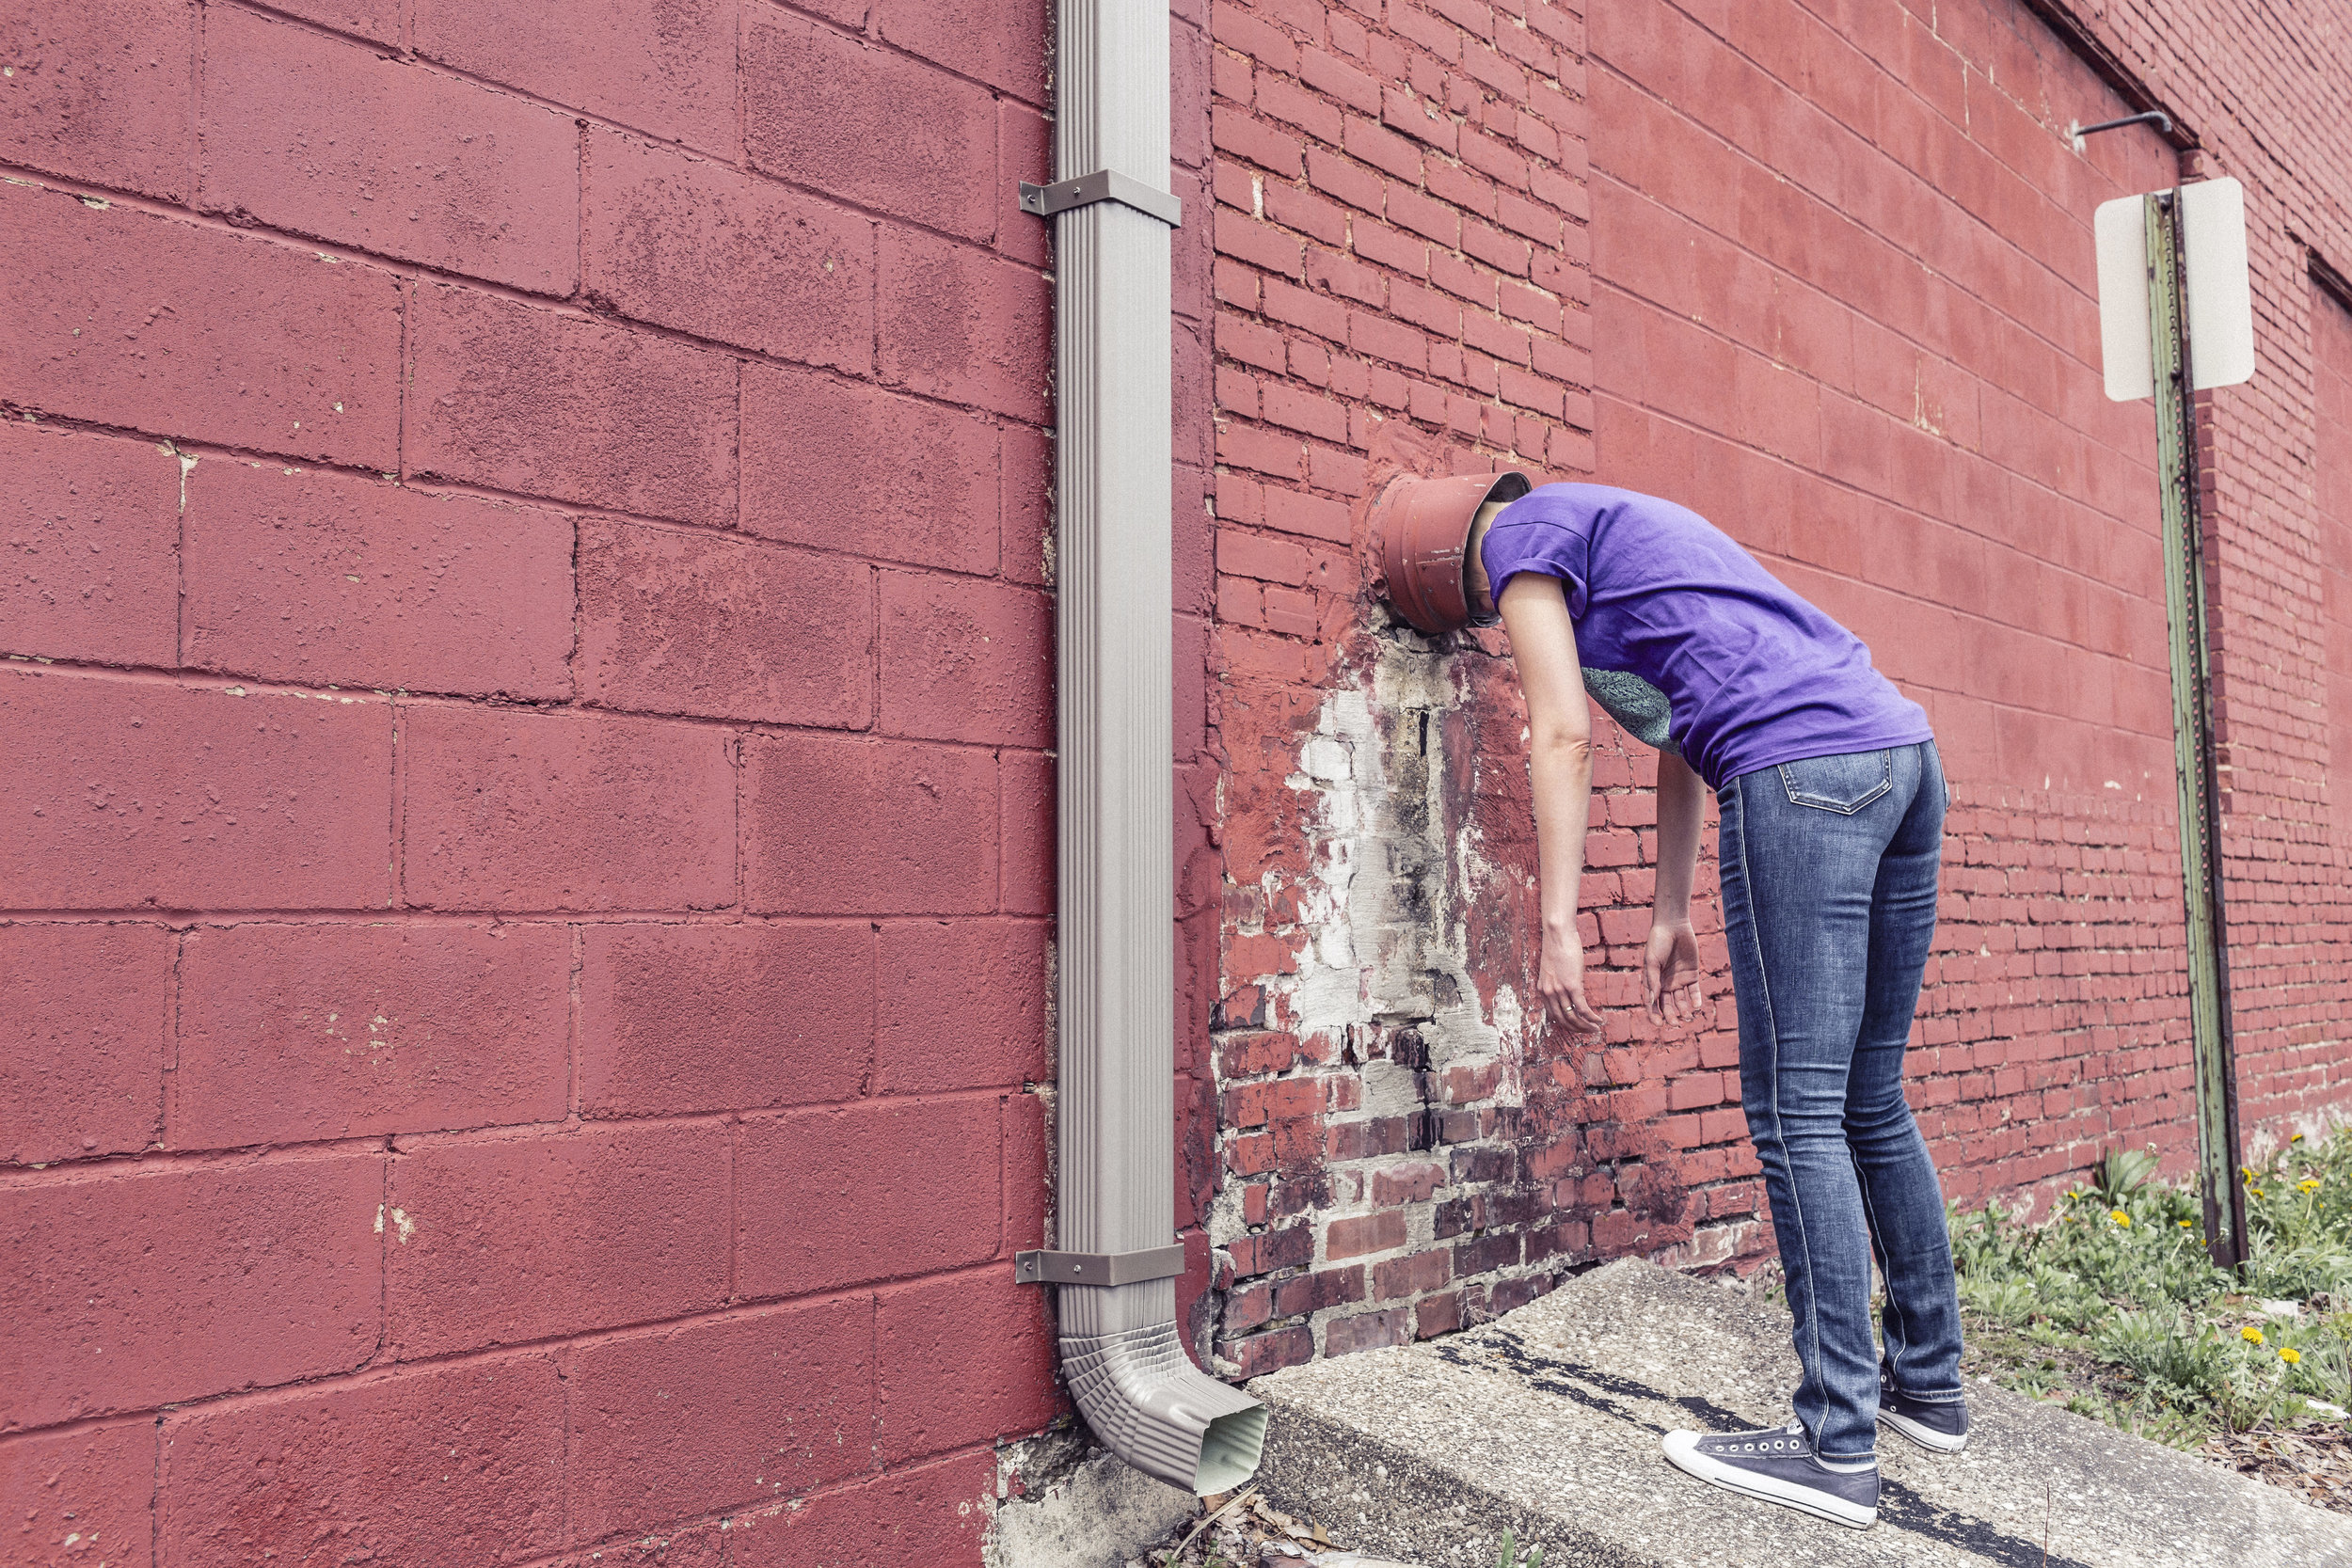 Photo credit: Stuck in the Wall—By Ryan McGuire, via   Gratisography